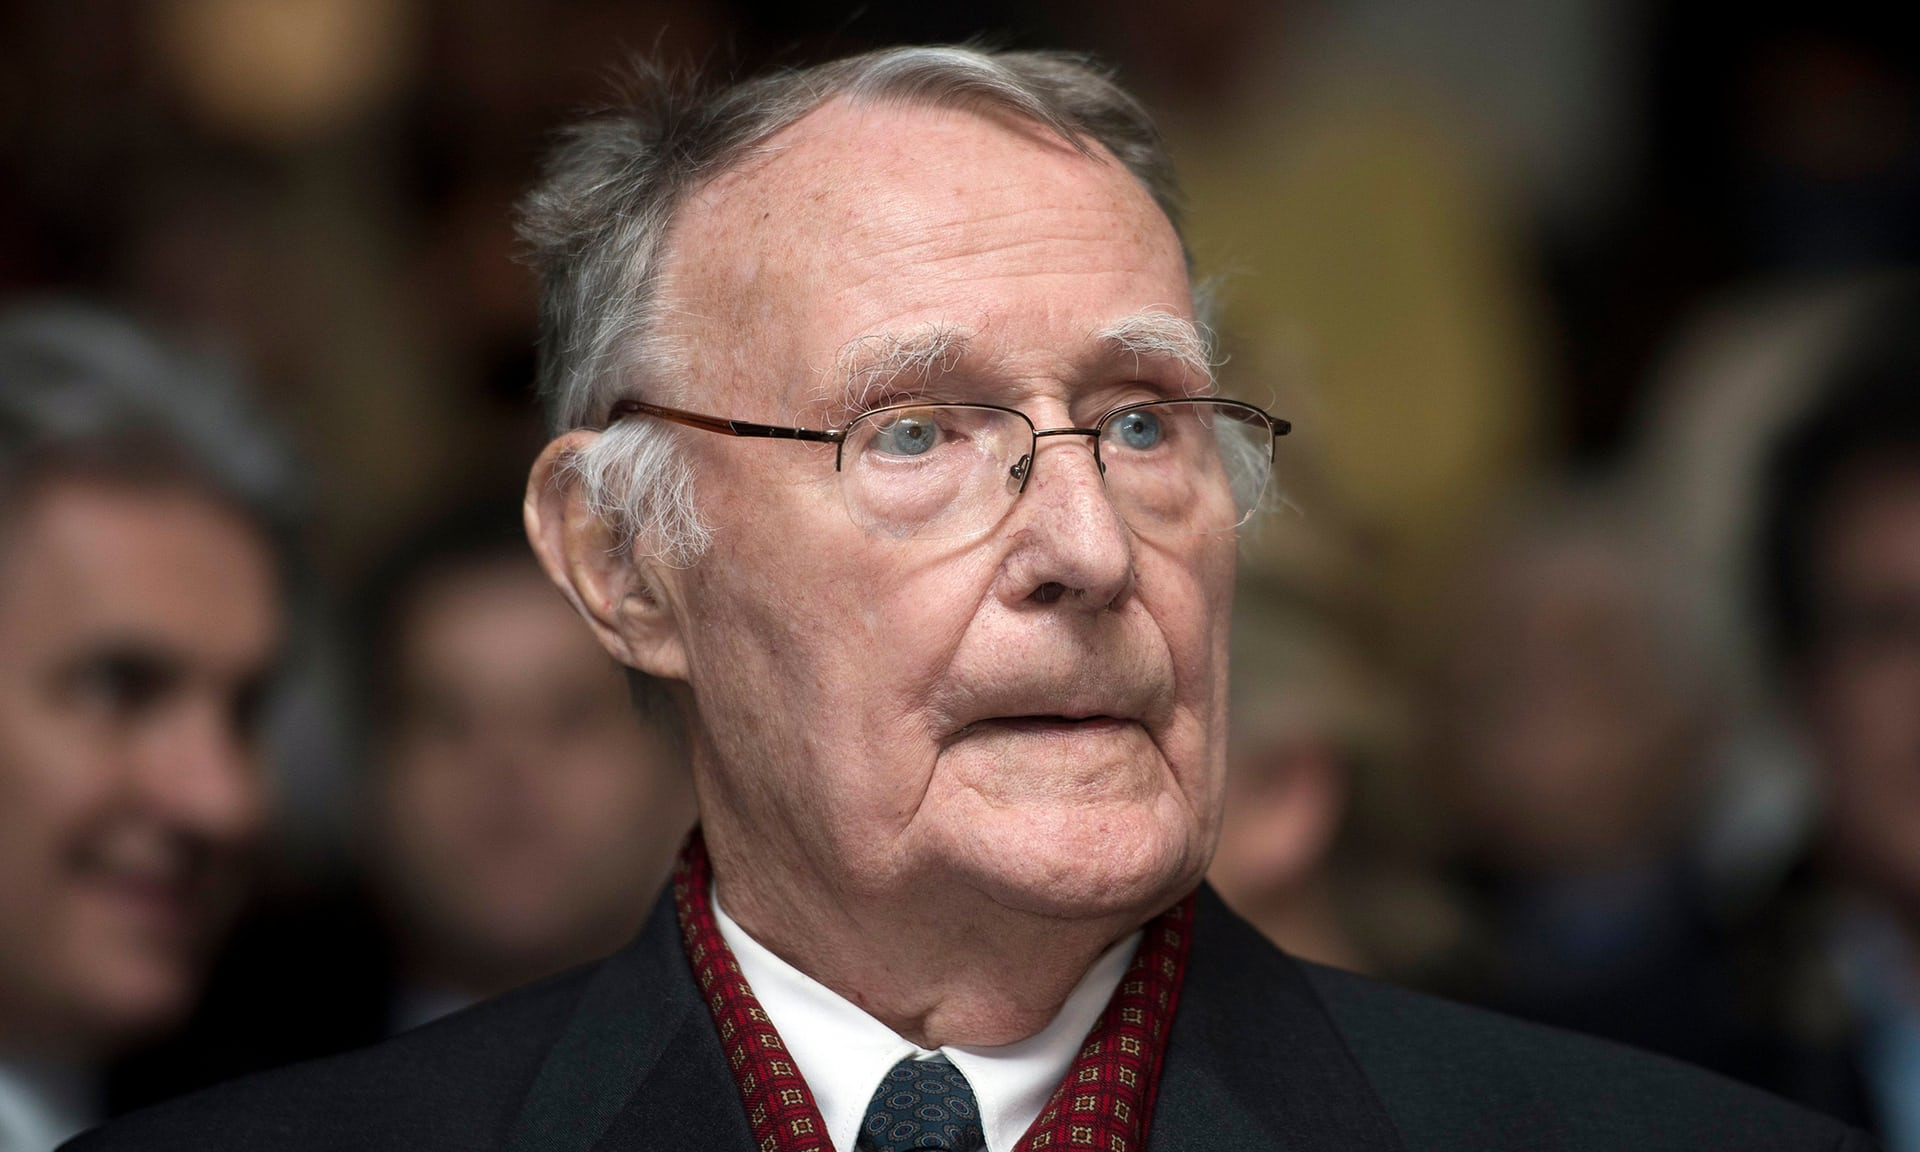 Ingvar Kamprad, pictured in 2012.